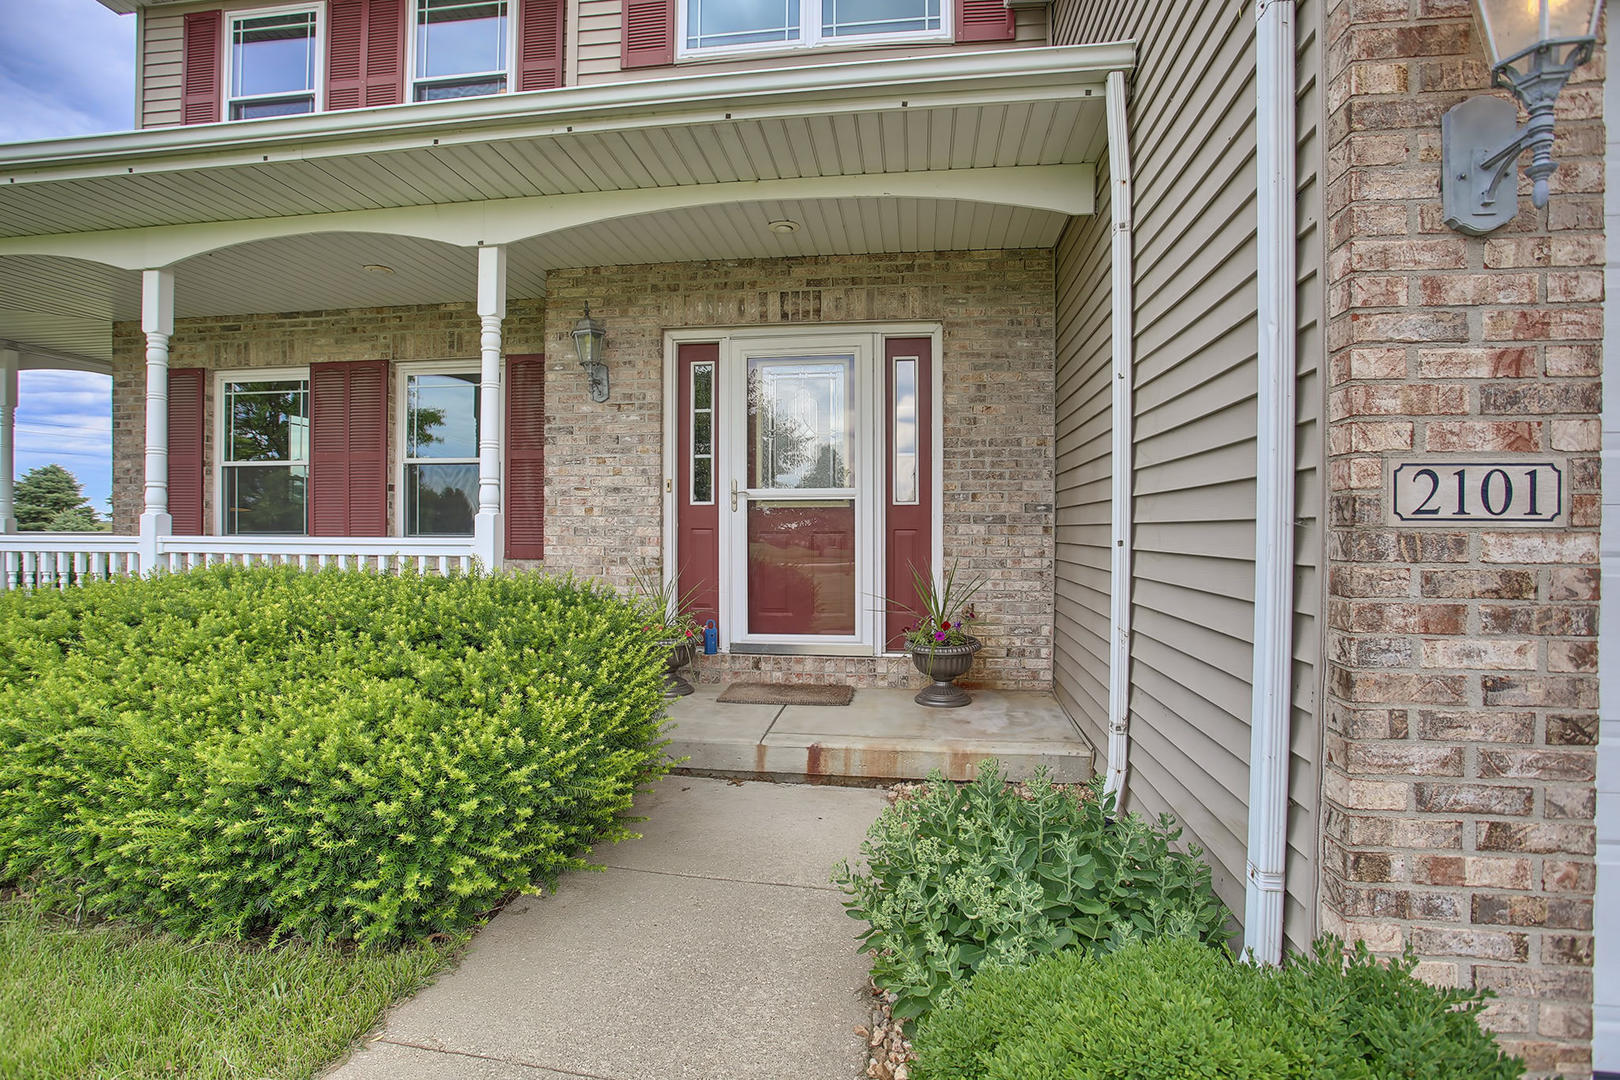 2101 Laurel Park, Champaign, Illinois, 61822